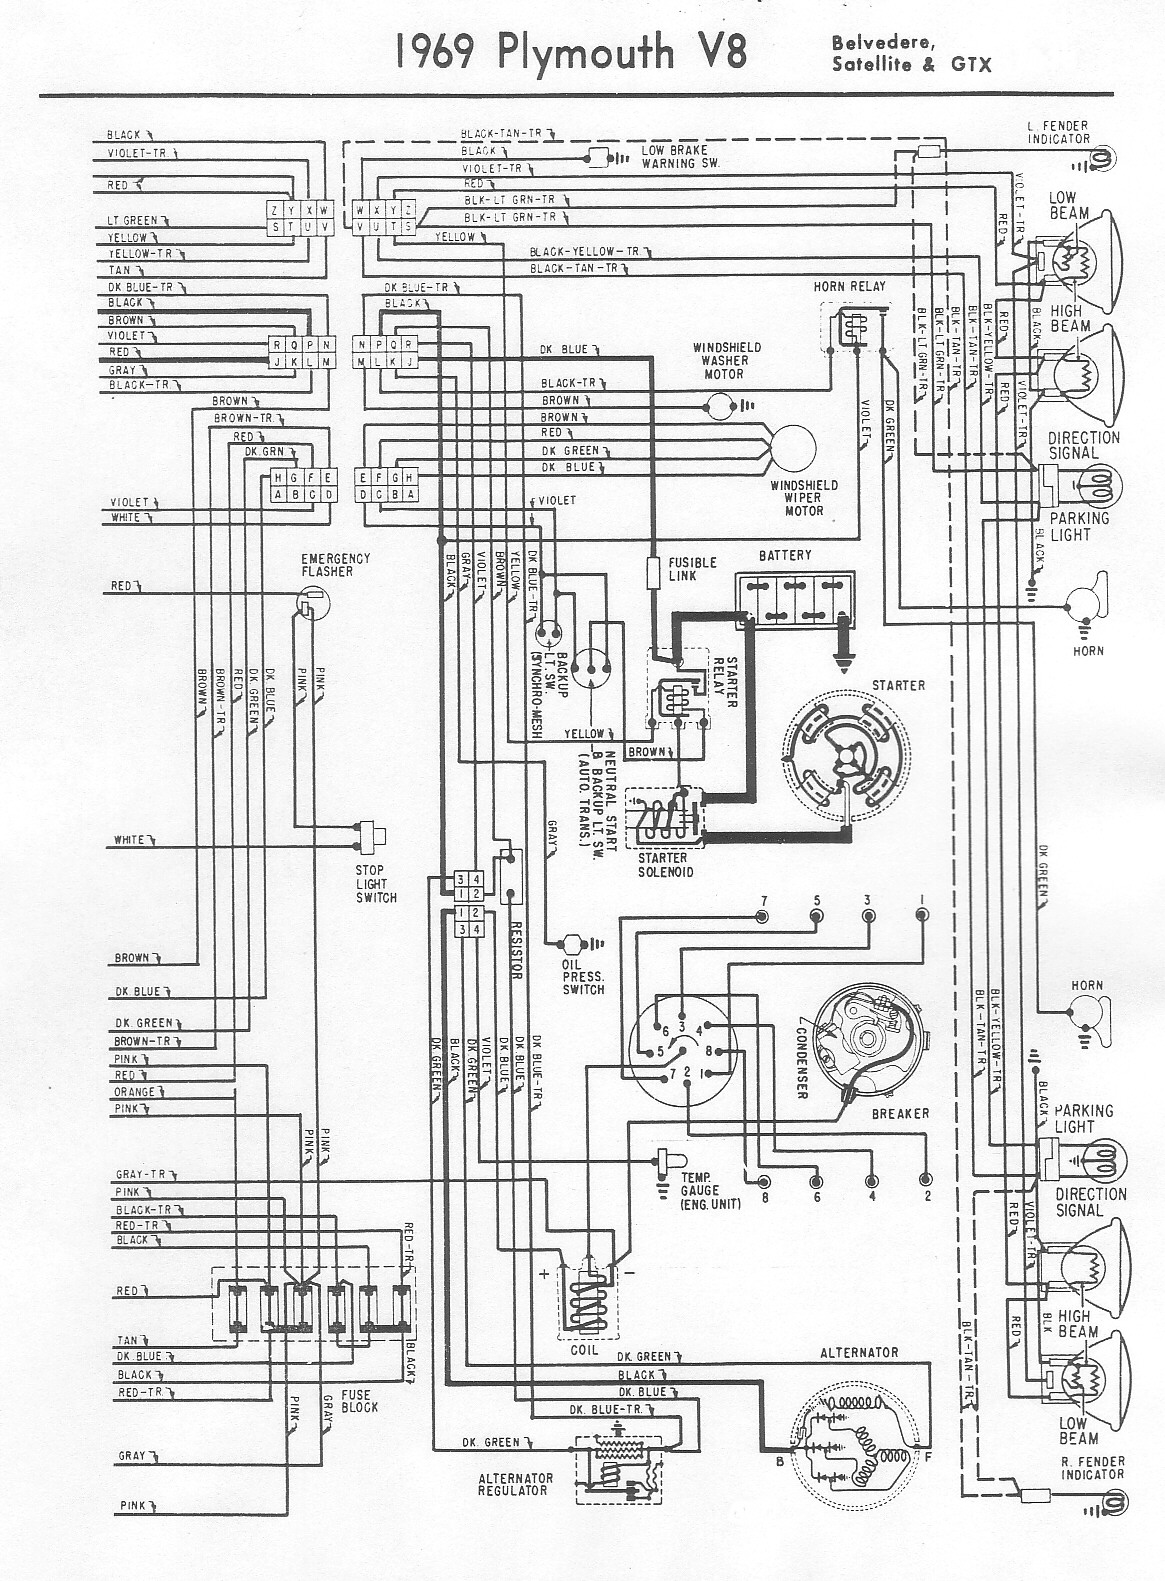 1968 Plymouth Roadrunner Wiring Diagram Opinions About 1967 Barracuda Dash 1970 Road Runner Corvette Elsalvadorla Gtx